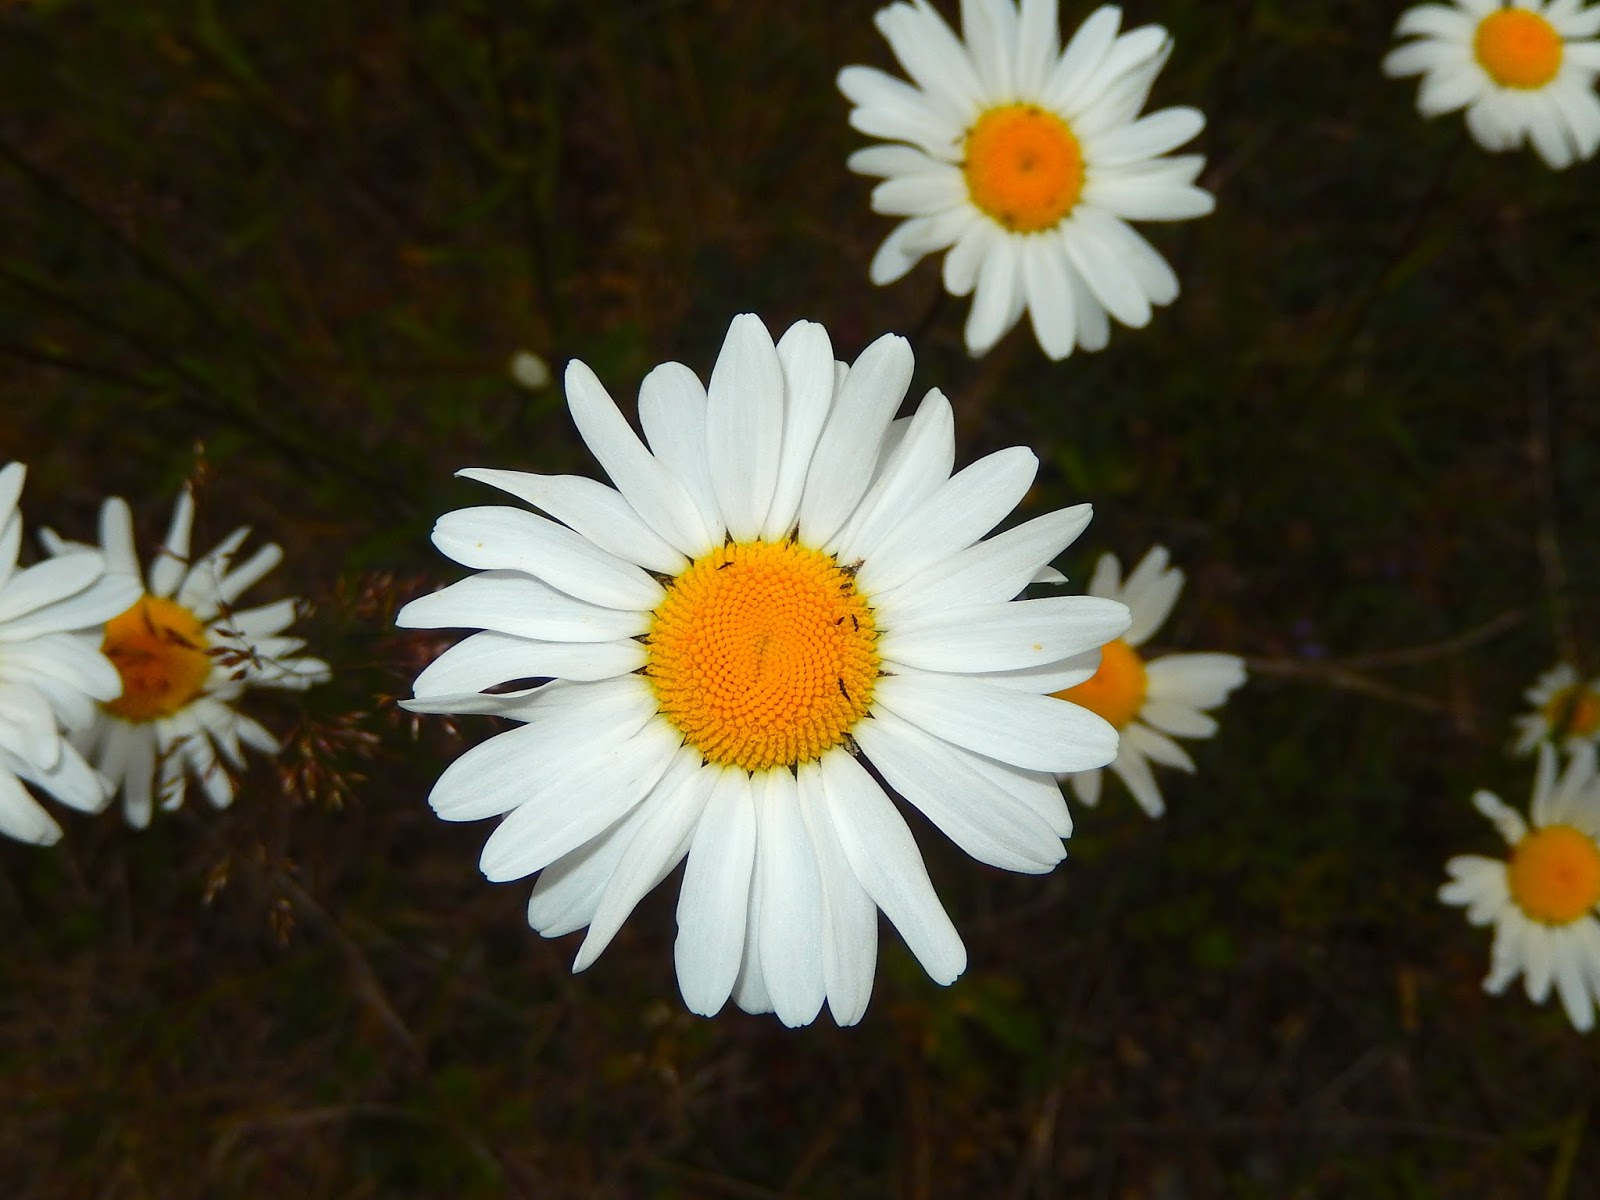 Powell river books blog coastal bc plants oxeye daisy the young leaves are edible and very sweet and the flowers can be used to make a wine similar to dandelion wine these daisies may be weeds izmirmasajfo